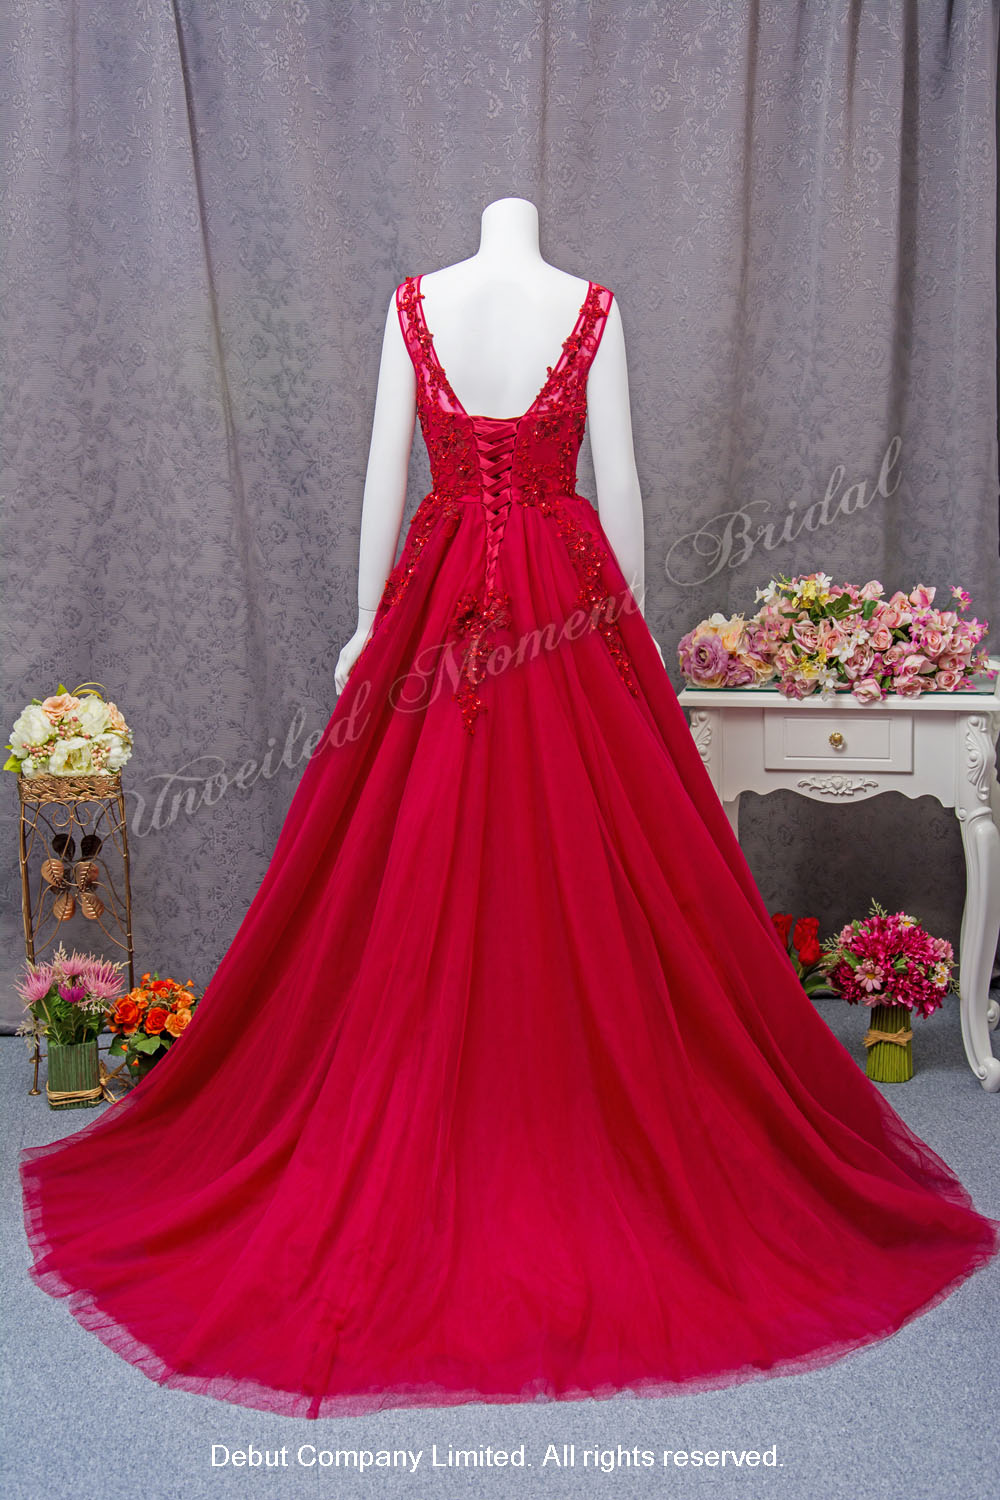 Low-back, Deep-V neckline with see-through, embellished with lace appliques A-line evening gown with court train. Colour: Burgundy. 大V領, 美背, 透視蕾絲圓領, 蕾絲閃片釘珠, A-line酒紅色晩裝裙